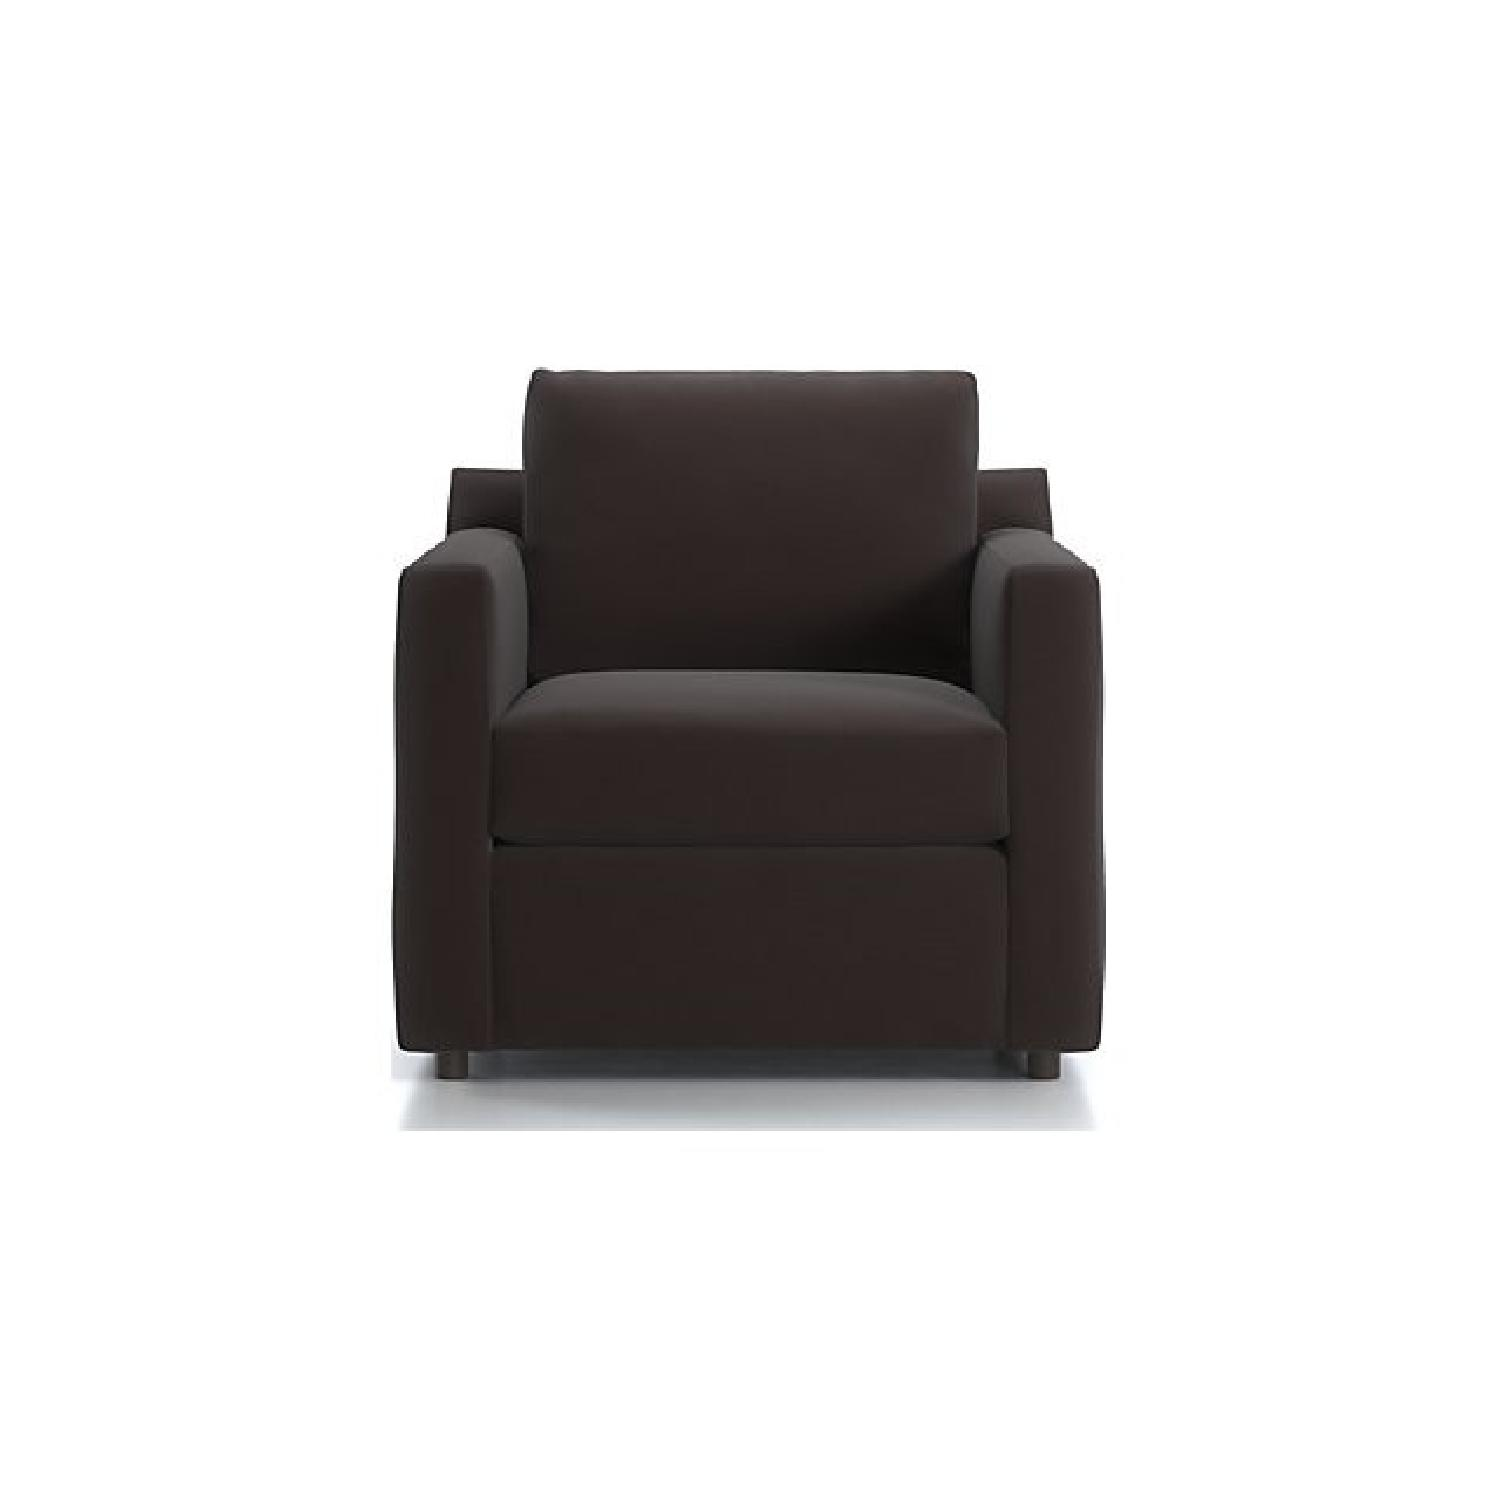 Crate & Barrel Barrett Sofa & Matching Armchair - image-10